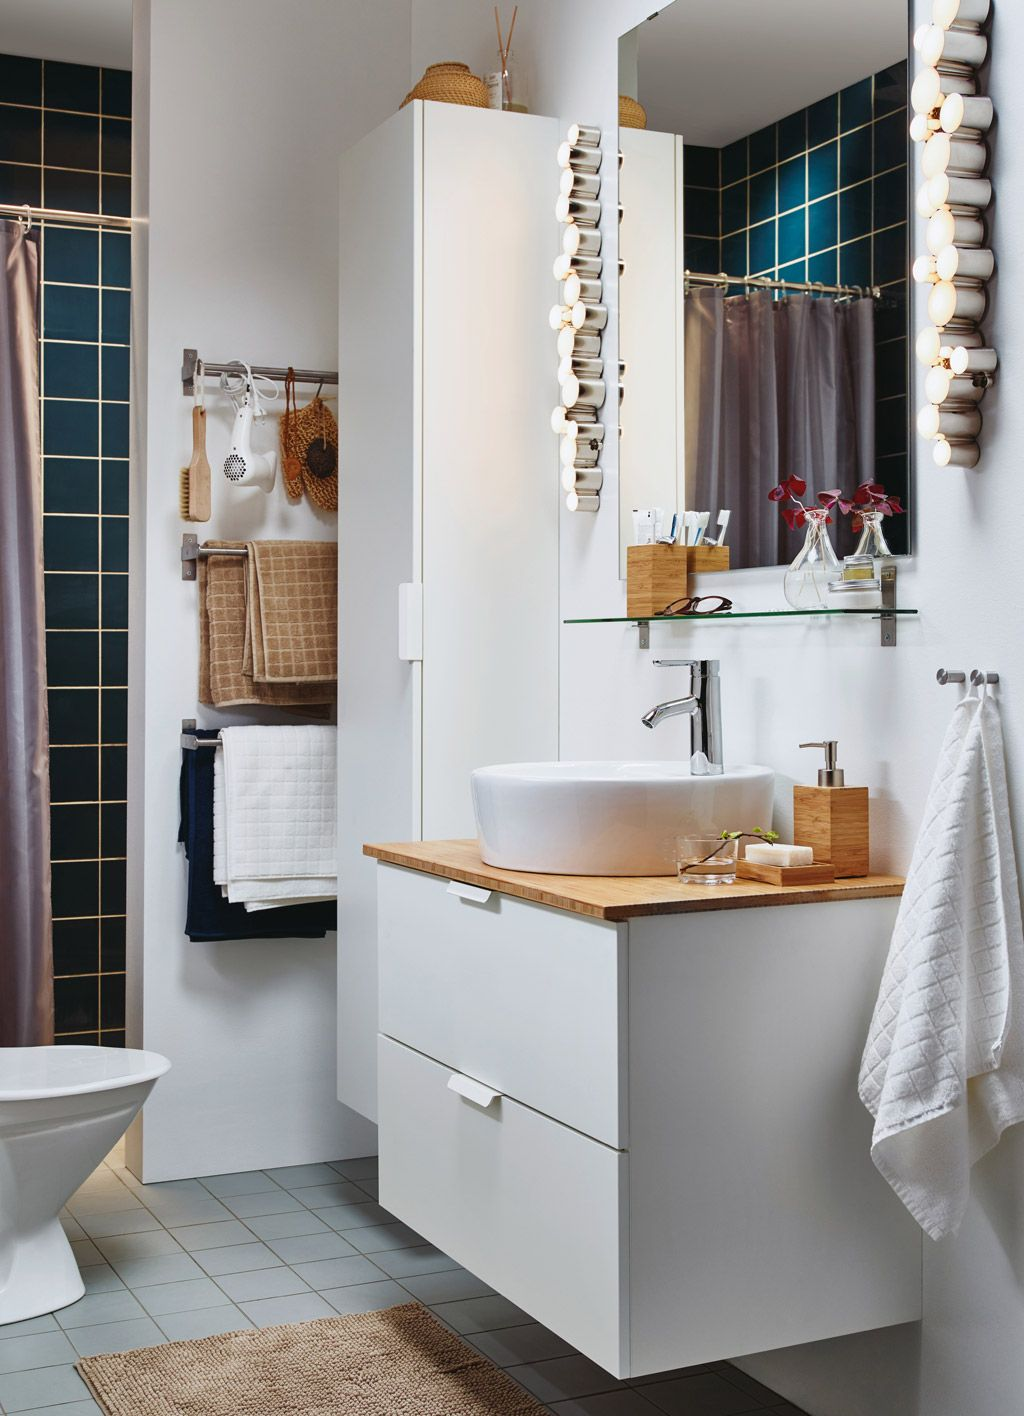 Beautiful A Small White Bathroom With A High Cabinet And A Washstand Combined With  Accessories In Bamboo